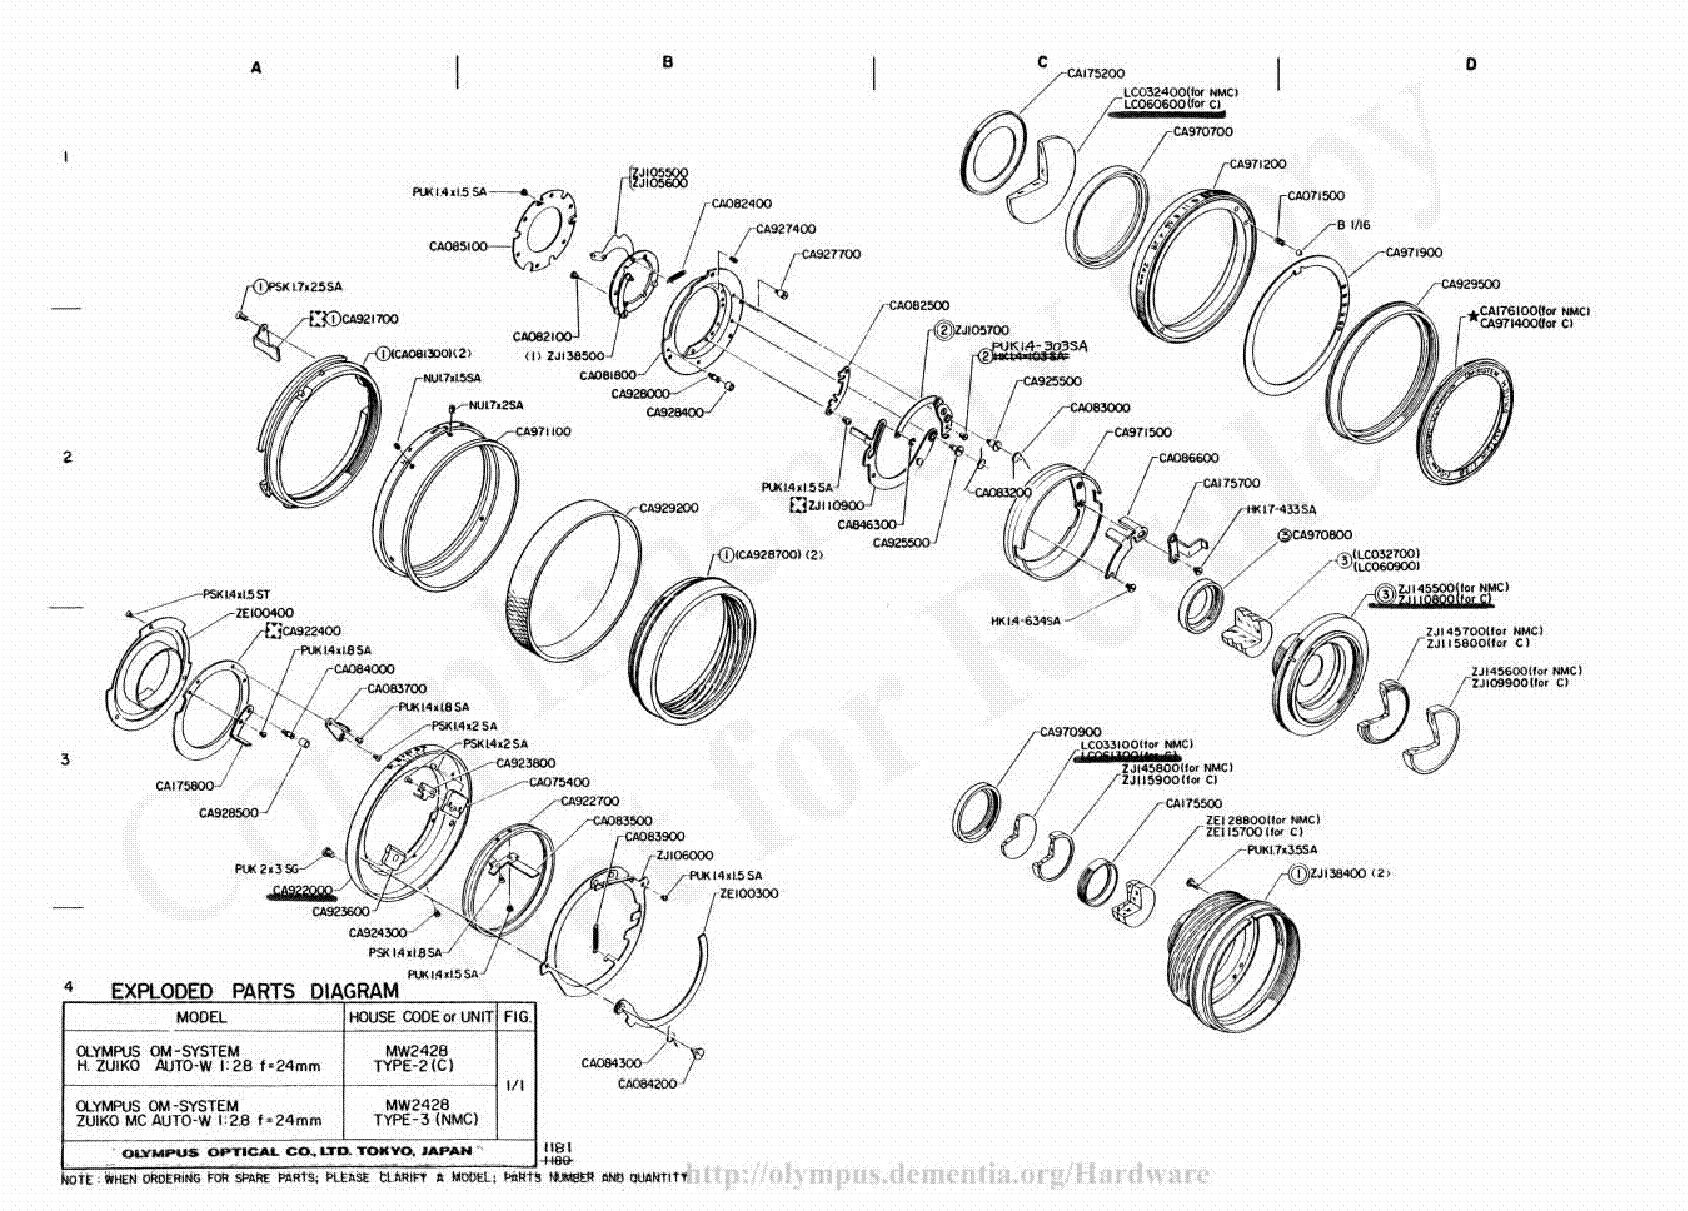 OLYMPUS 24MM F2.8 EXPLODED PARTS DIAGRAM Service Manual